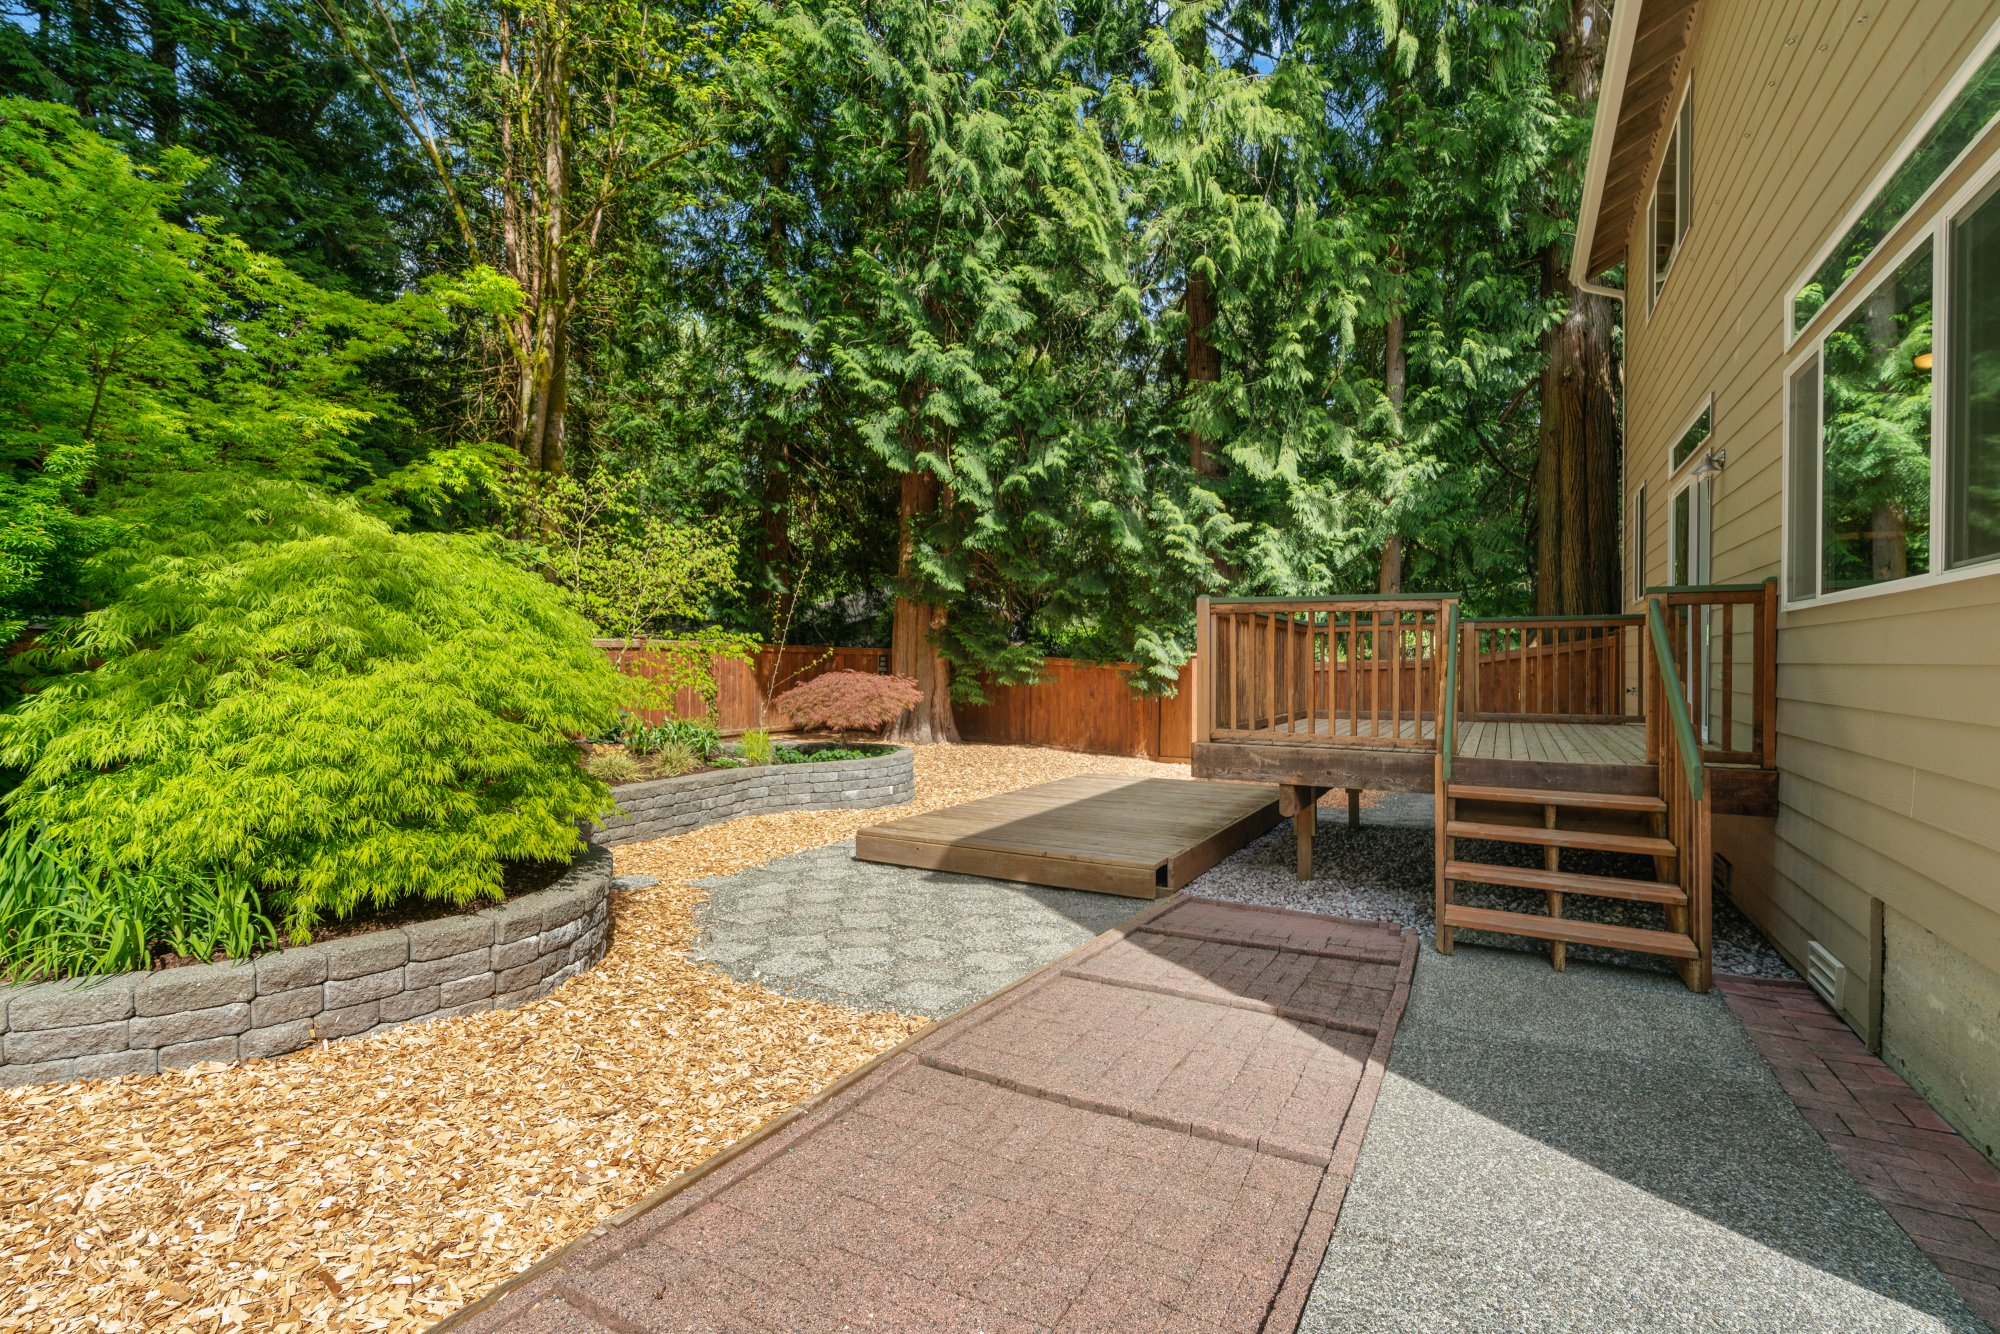 017-2946Northeast178thStreet-LakeForestPark-WA-98155-SMALL